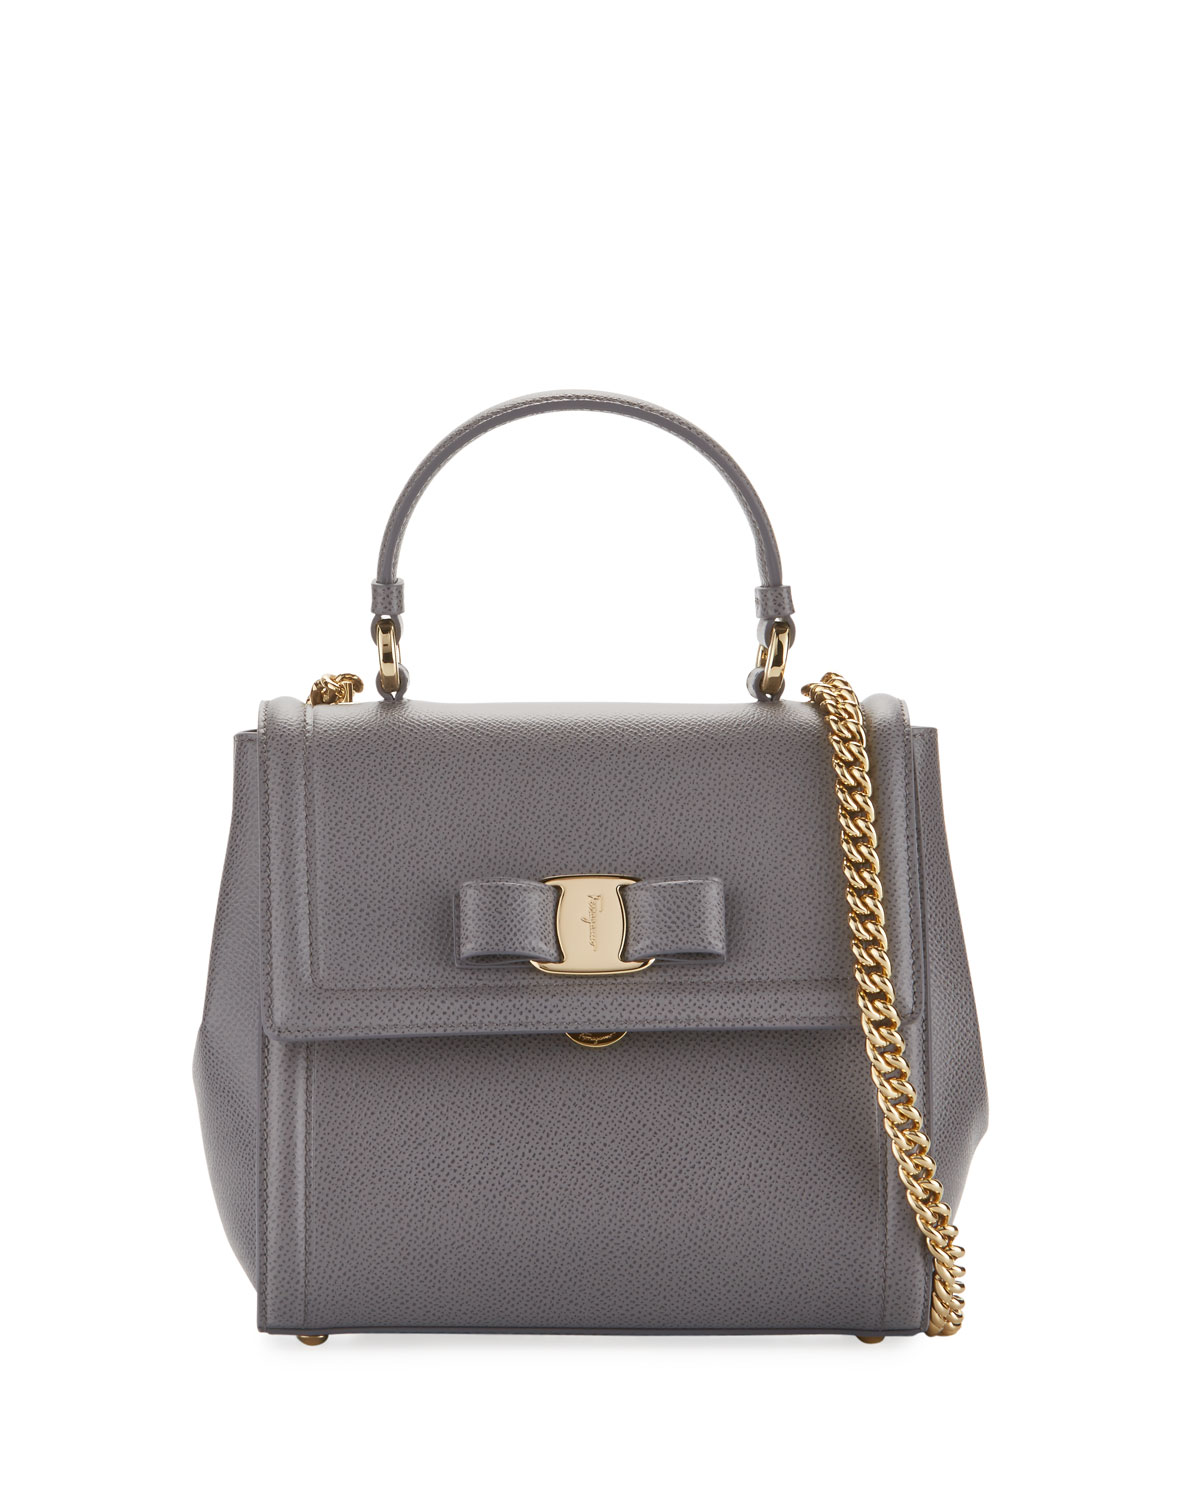 small Vara bow bag - Unavailable Salvatore Ferragamo wBzsGH3tU